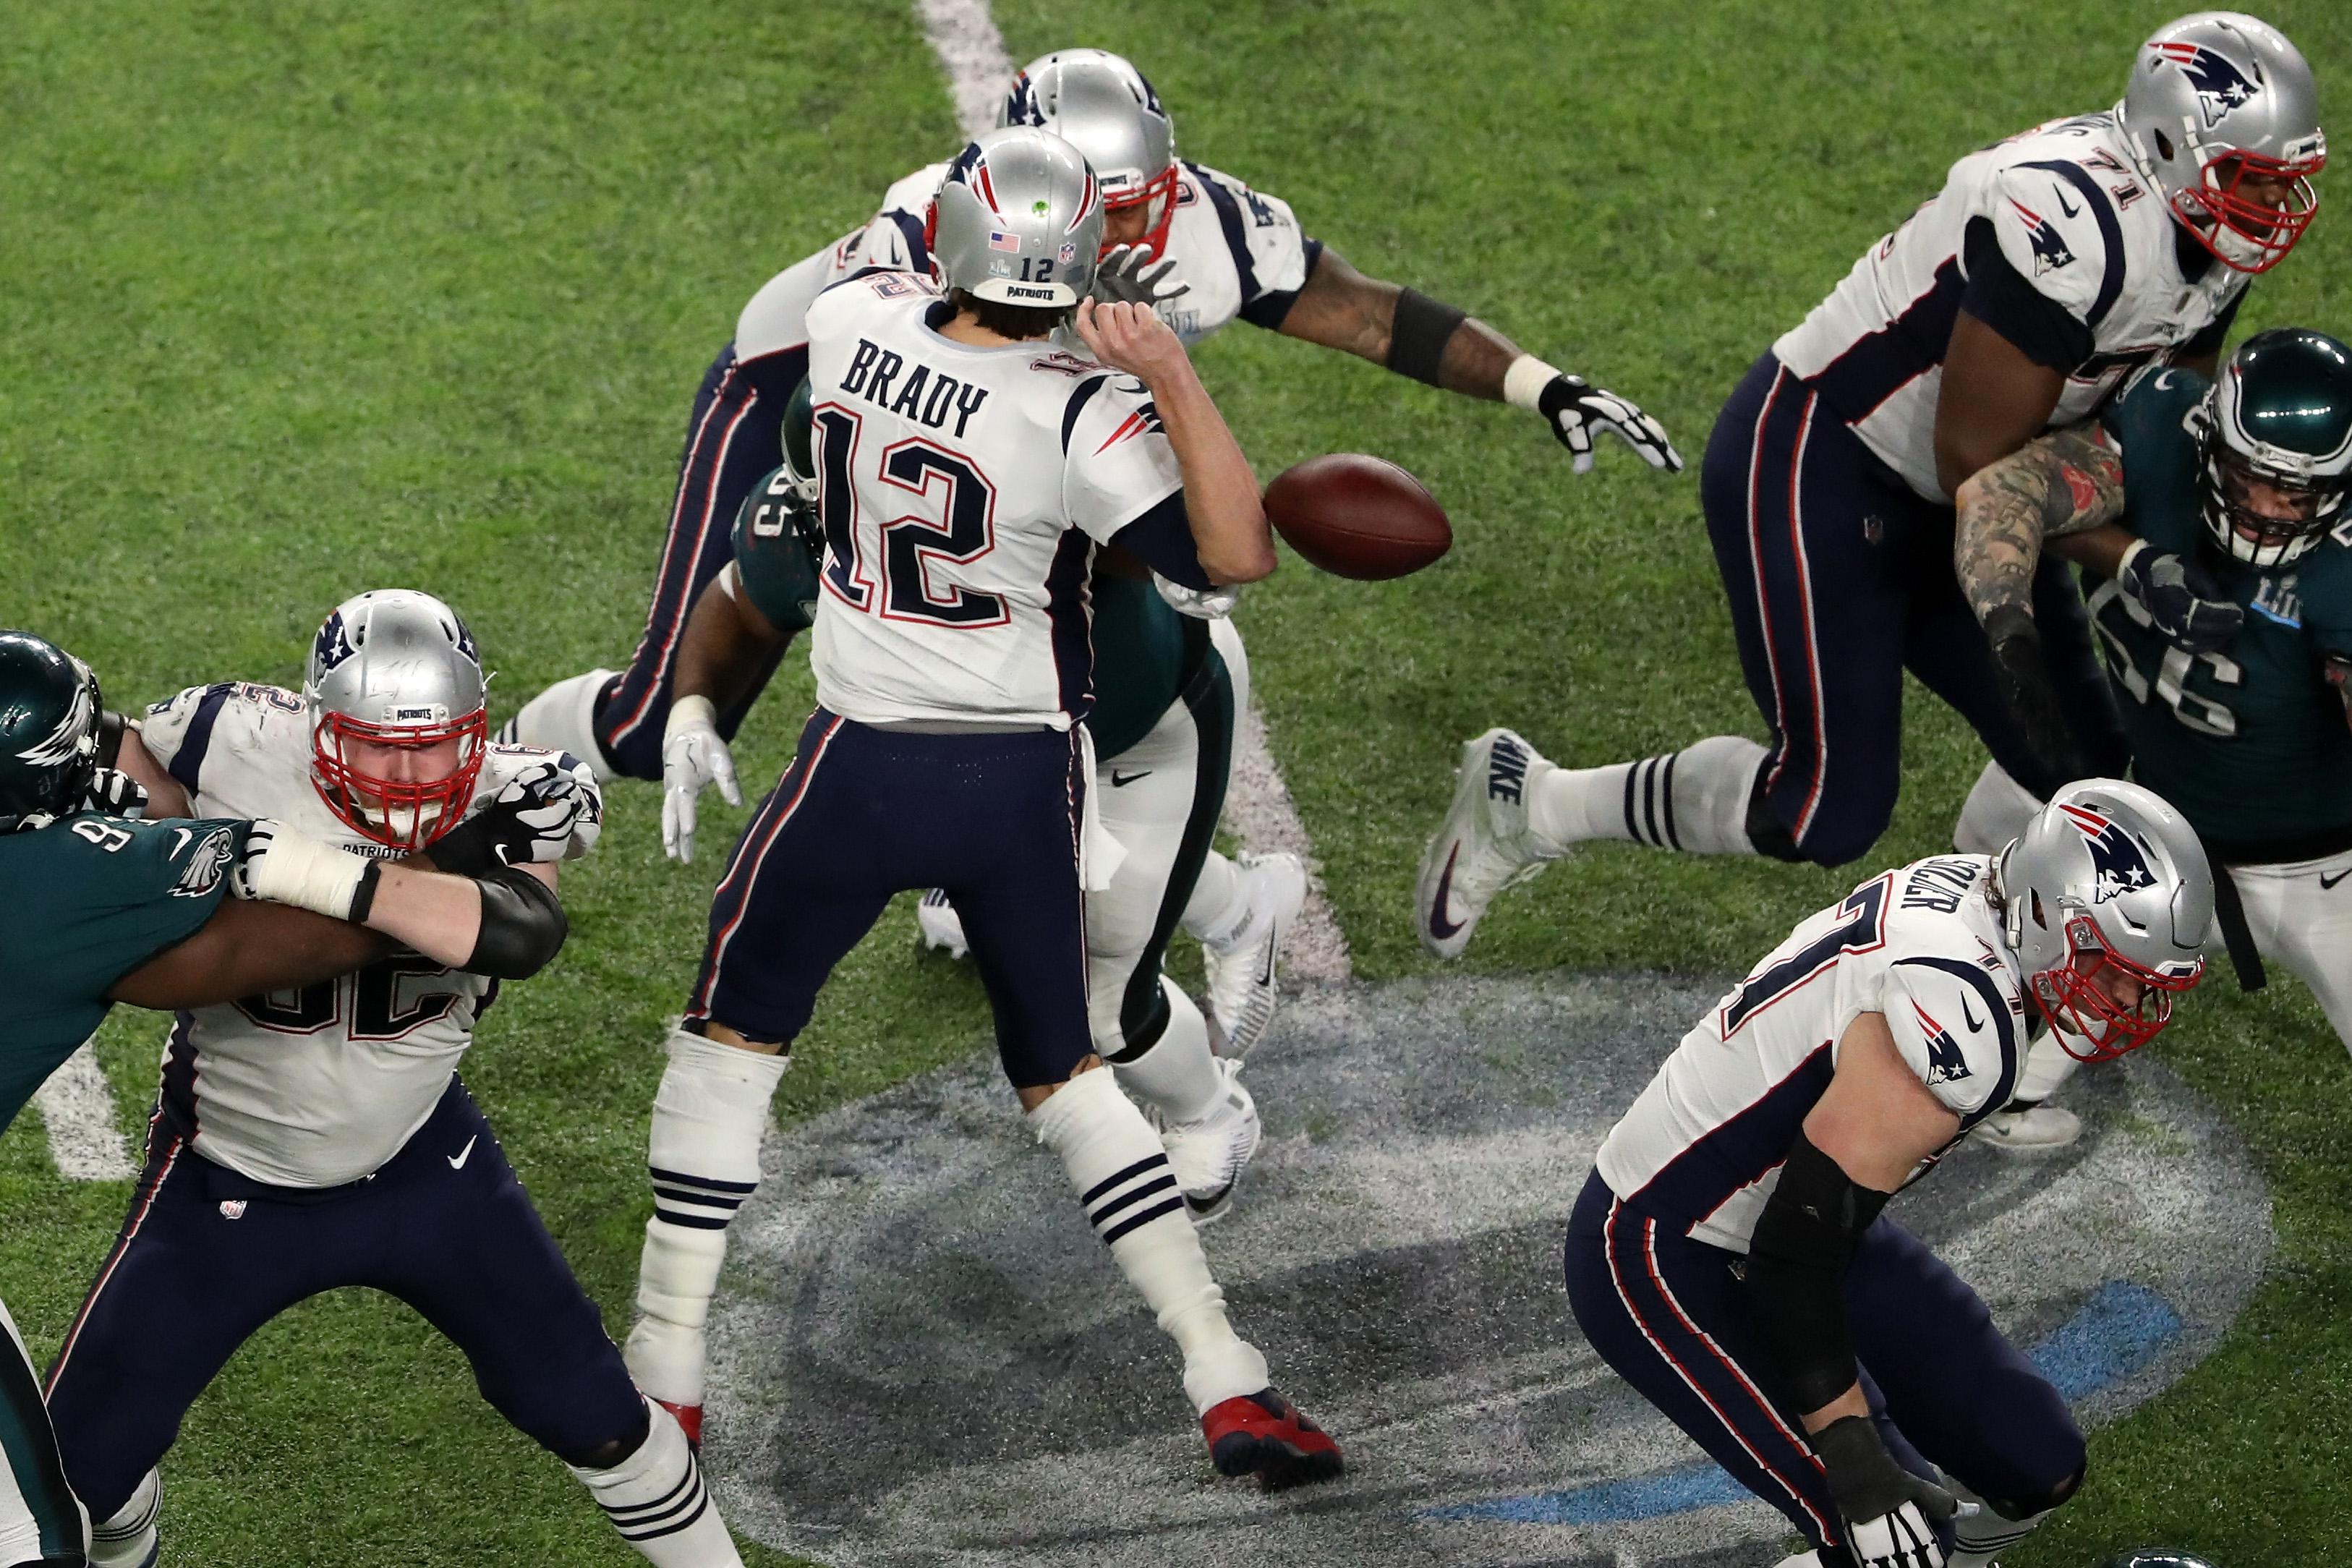 MINNEAPOLIS, MN - FEBRUARY 04:  Tom Brady #12 of the New England Patriots has the ball stripped by Brandon Graham #55 of the Philadelphia Eagles late in the fourth quarter in Super Bowl LII at U.S. Bank Stadium on February 4, 2018 in Minneapolis, Minnesota.  (Photo by Christian Petersen/Getty Images)